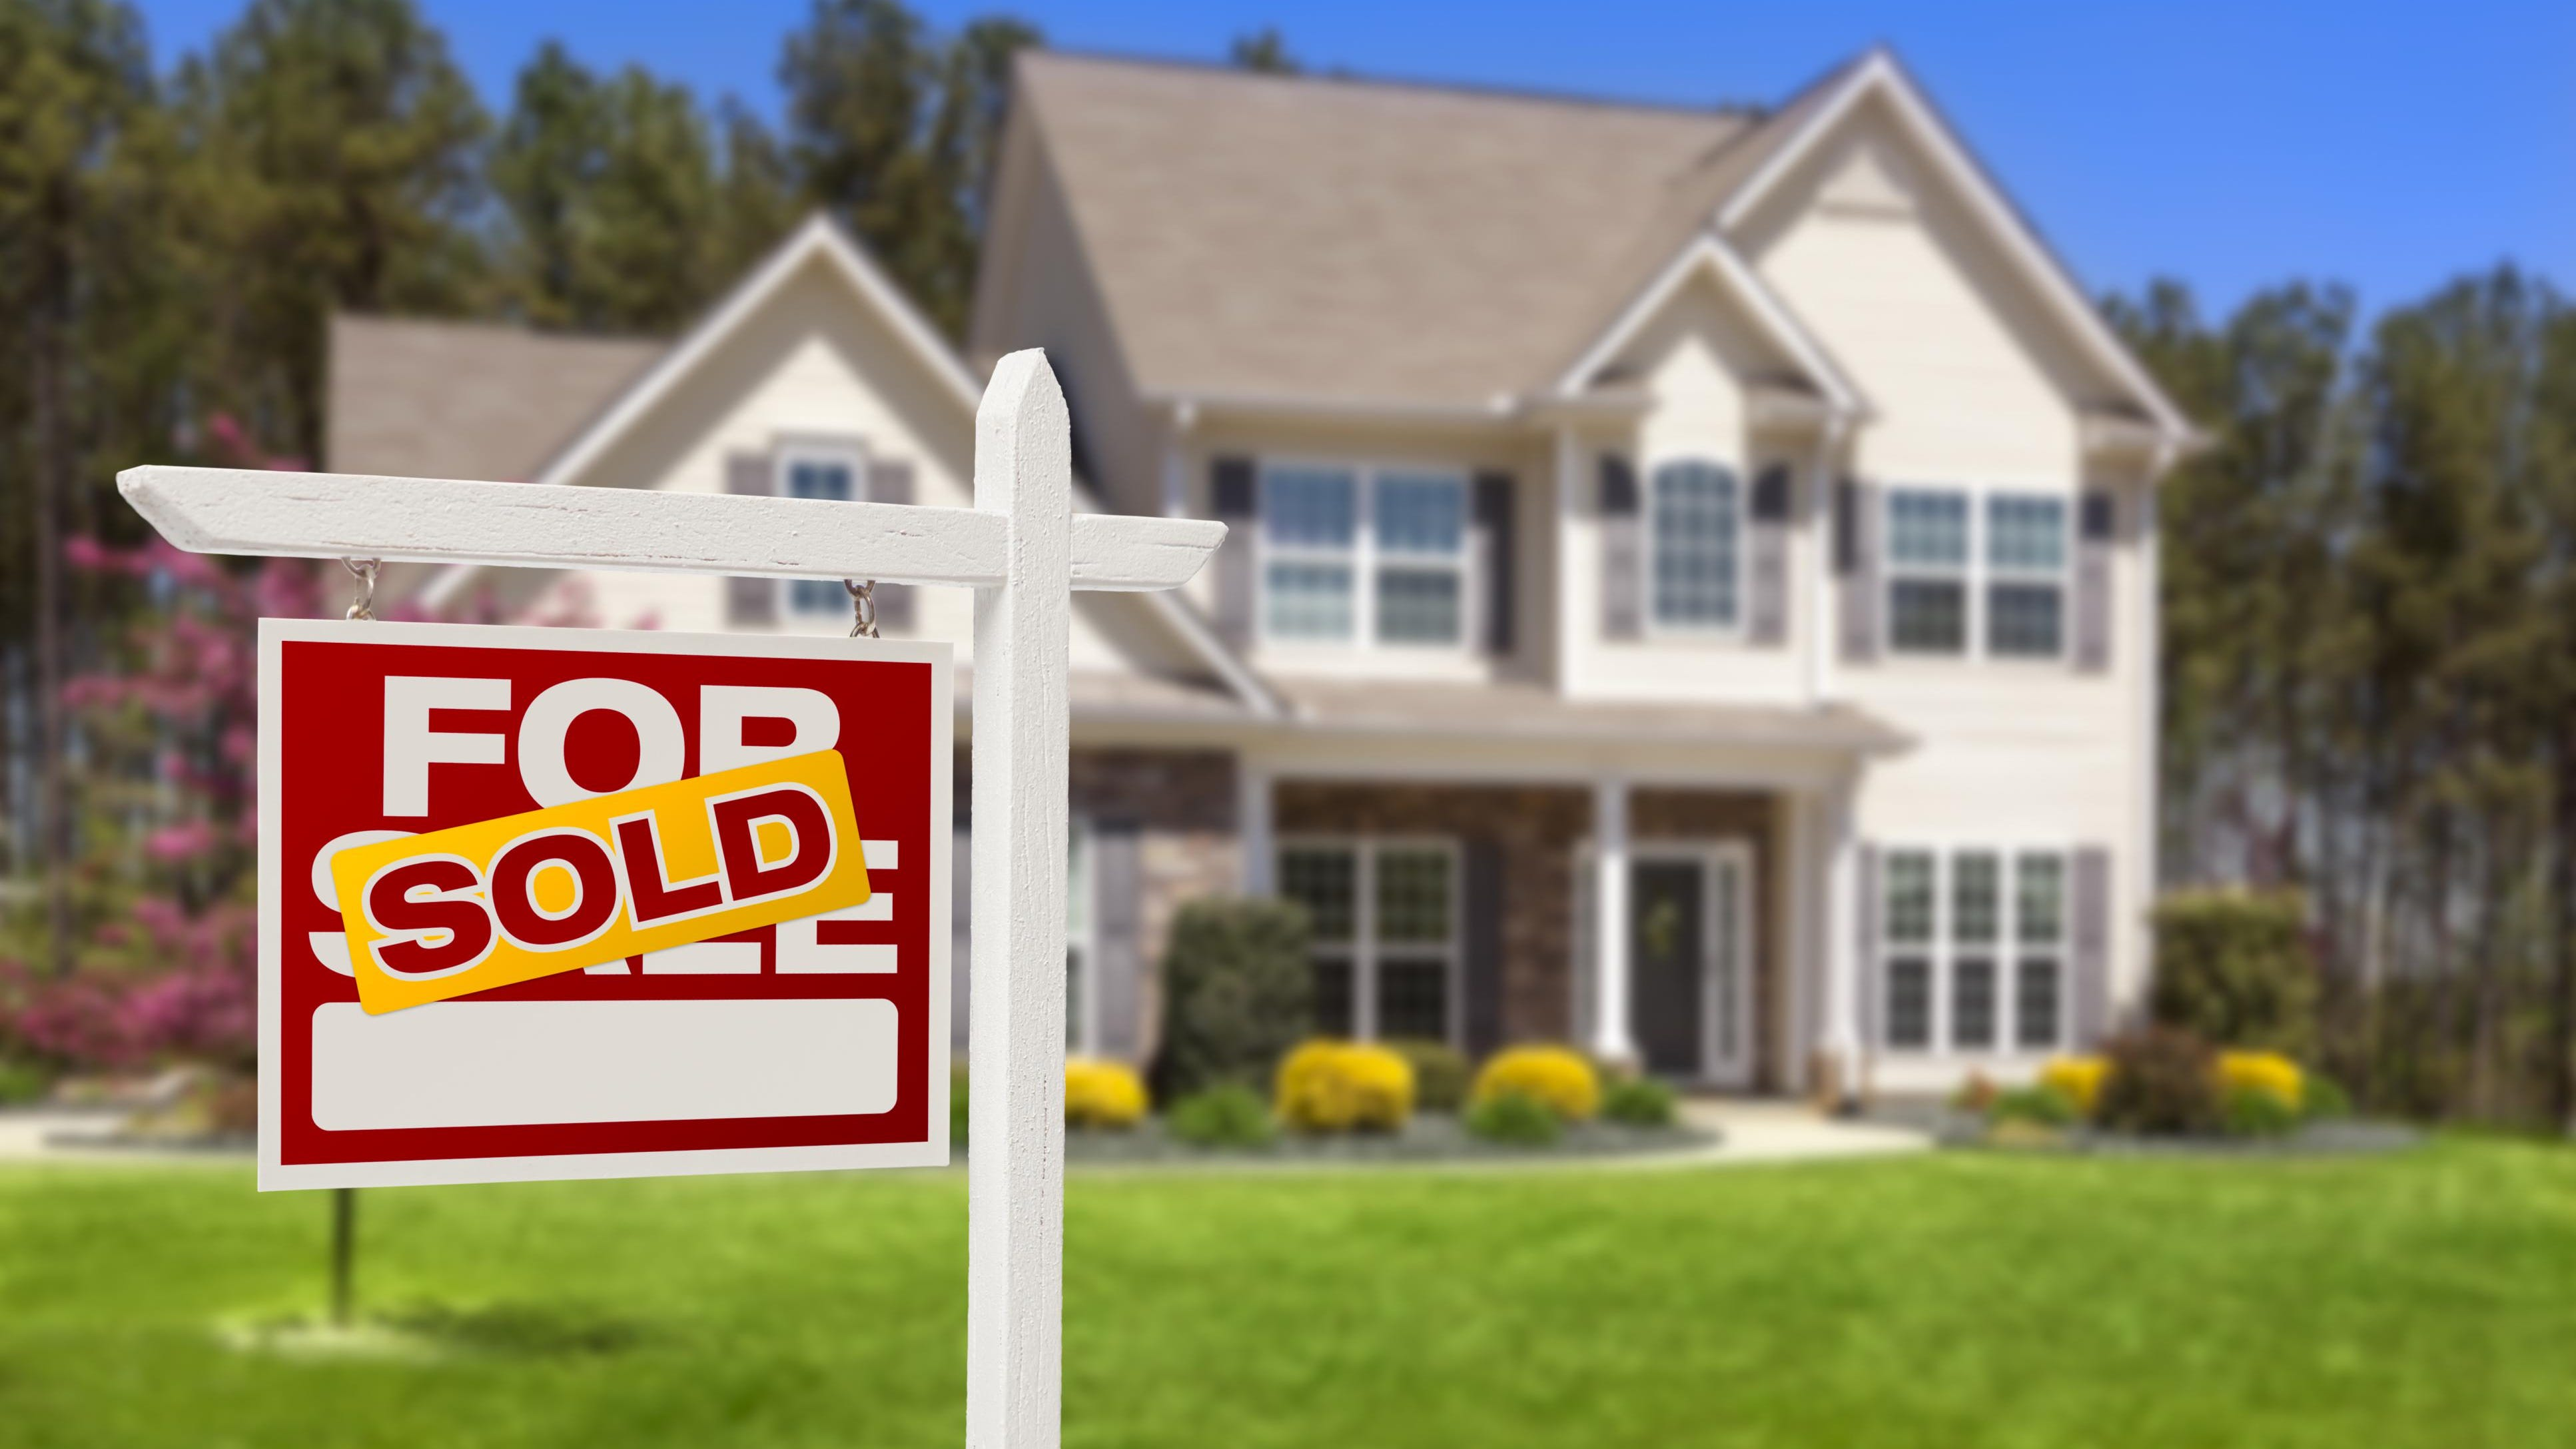 Reasons to Sell or Not Sell Your Property this Year